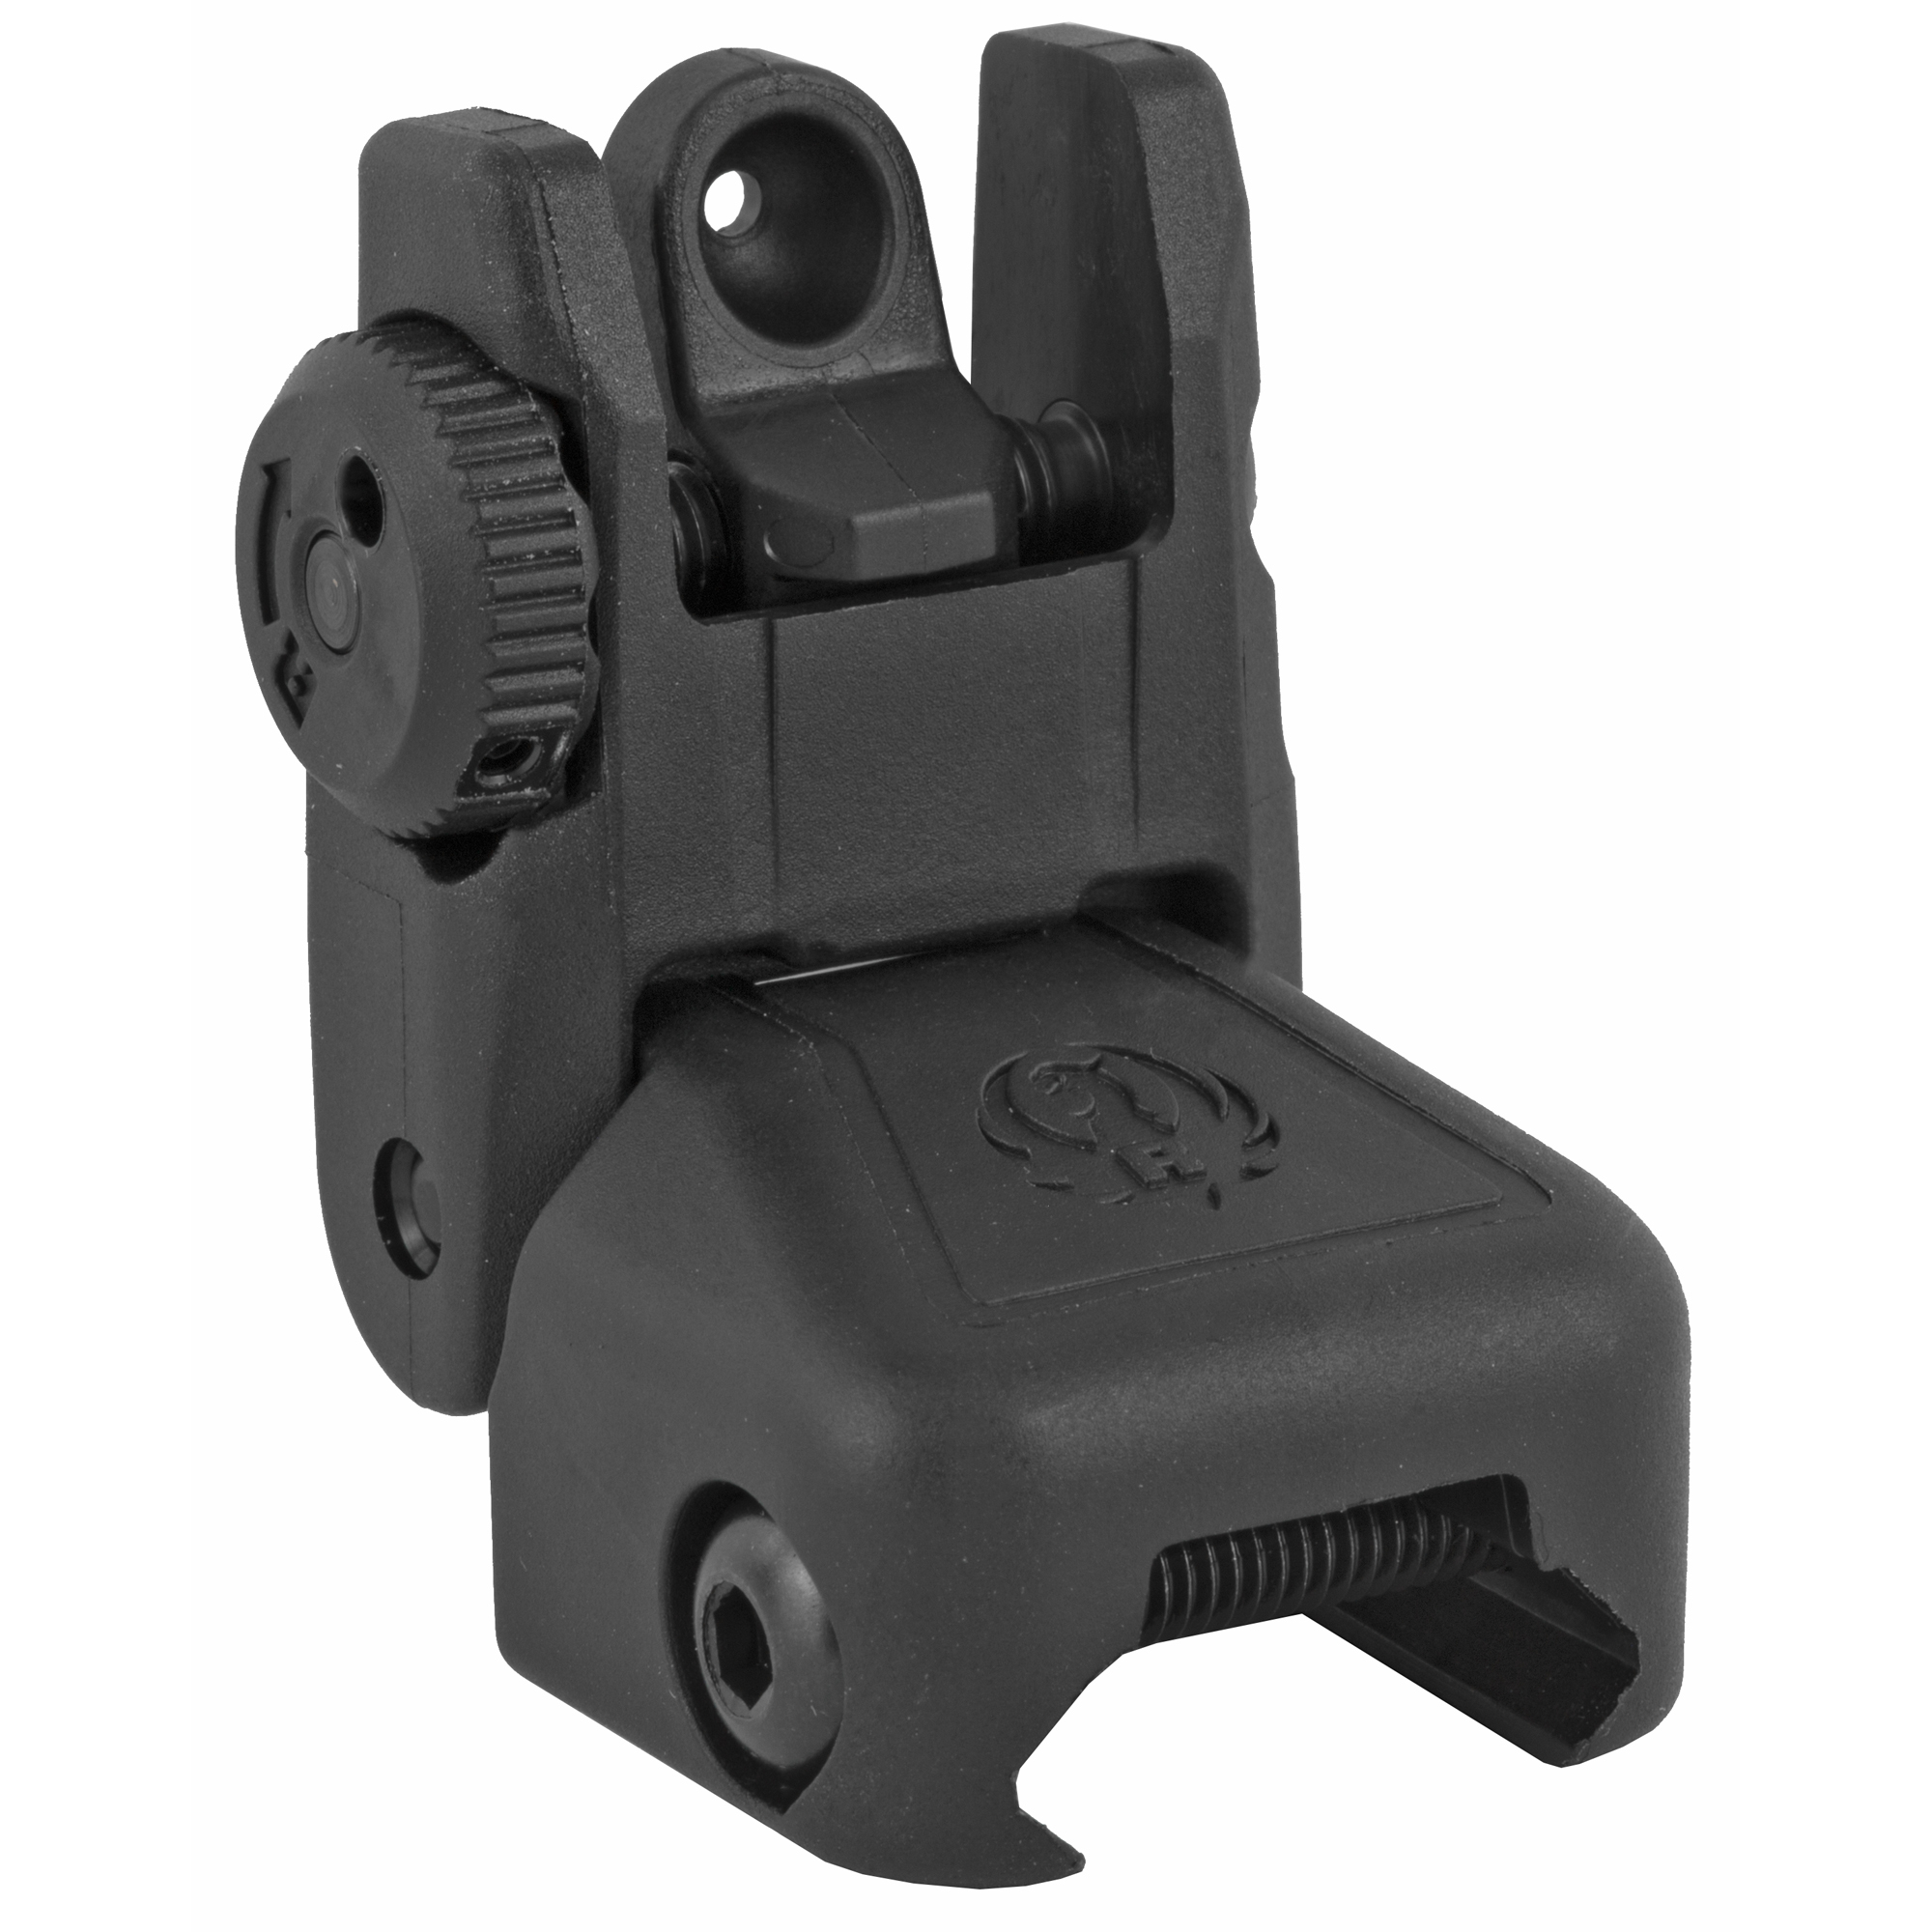 Ruger Rapid Deploy Folding Rear Sight Polymer Black